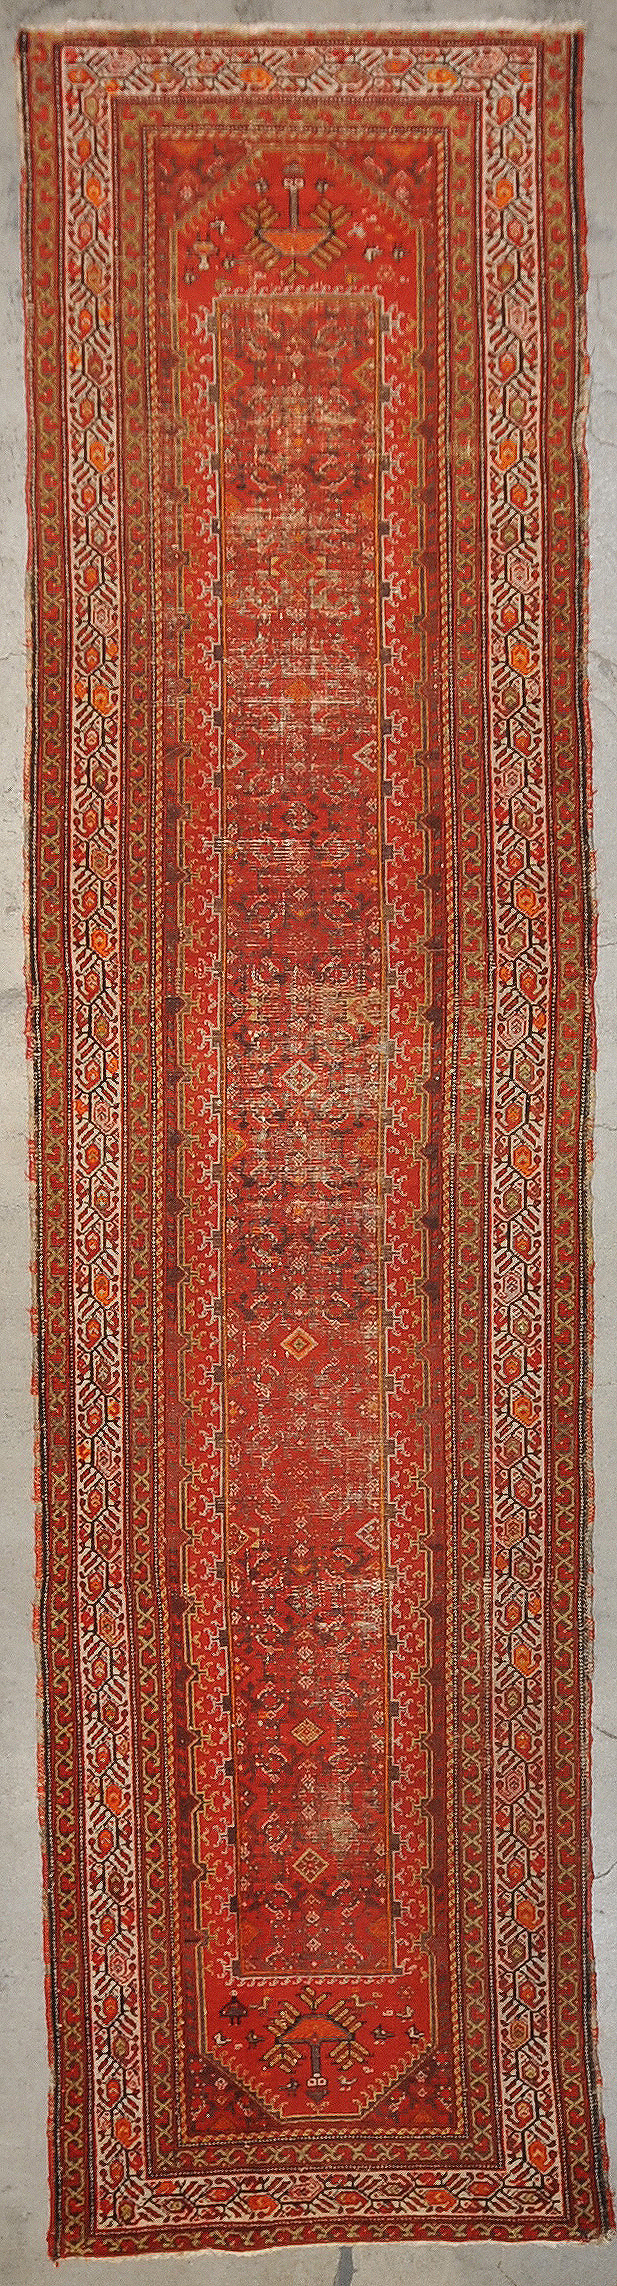 Antique Malayer Runner rugs and more oriental carpet -0